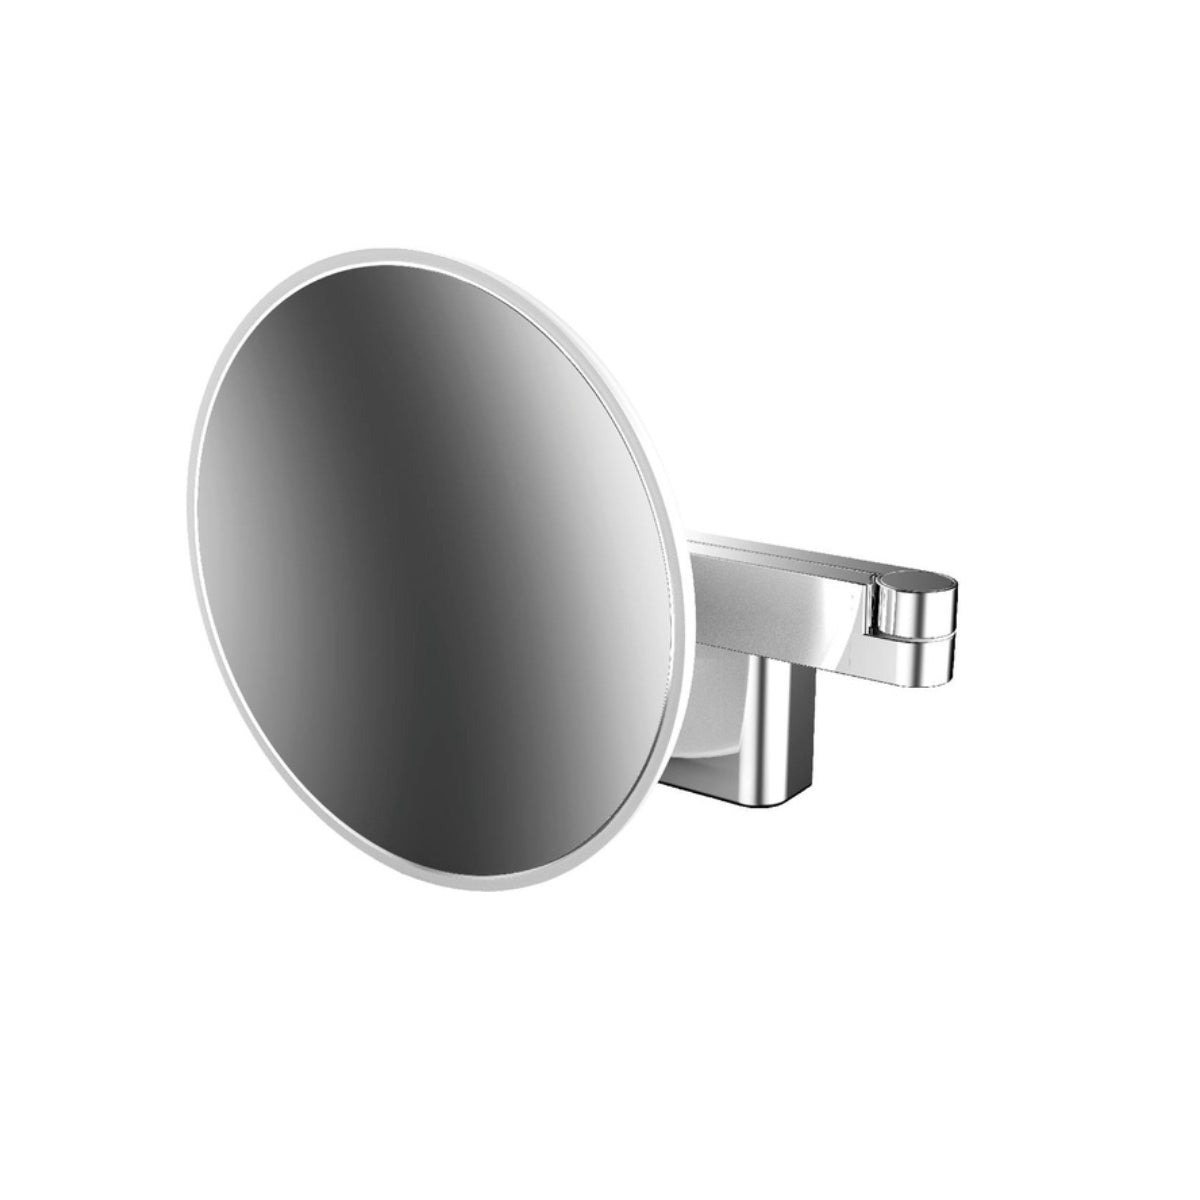 Emco Light Diffusion System LED Mirror, 5x (INTRO OFFER)